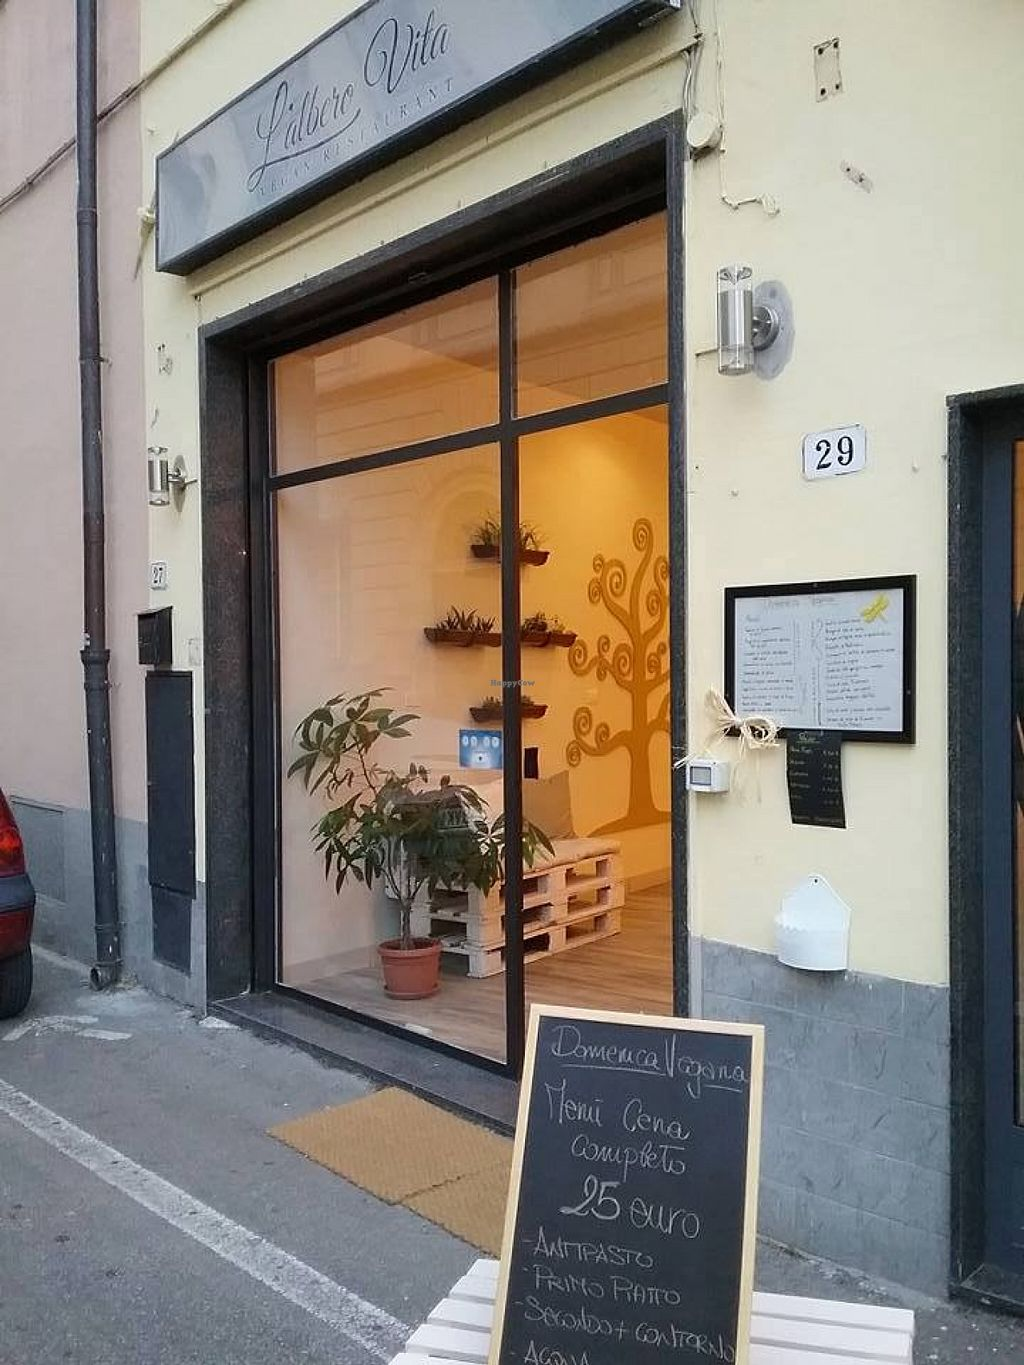 """Photo of L'Albero Vita  by <a href=""""/members/profile/community"""">community</a> <br/>L'Albero Vita <br/> December 3, 2015  - <a href='/contact/abuse/image/66646/127043'>Report</a>"""